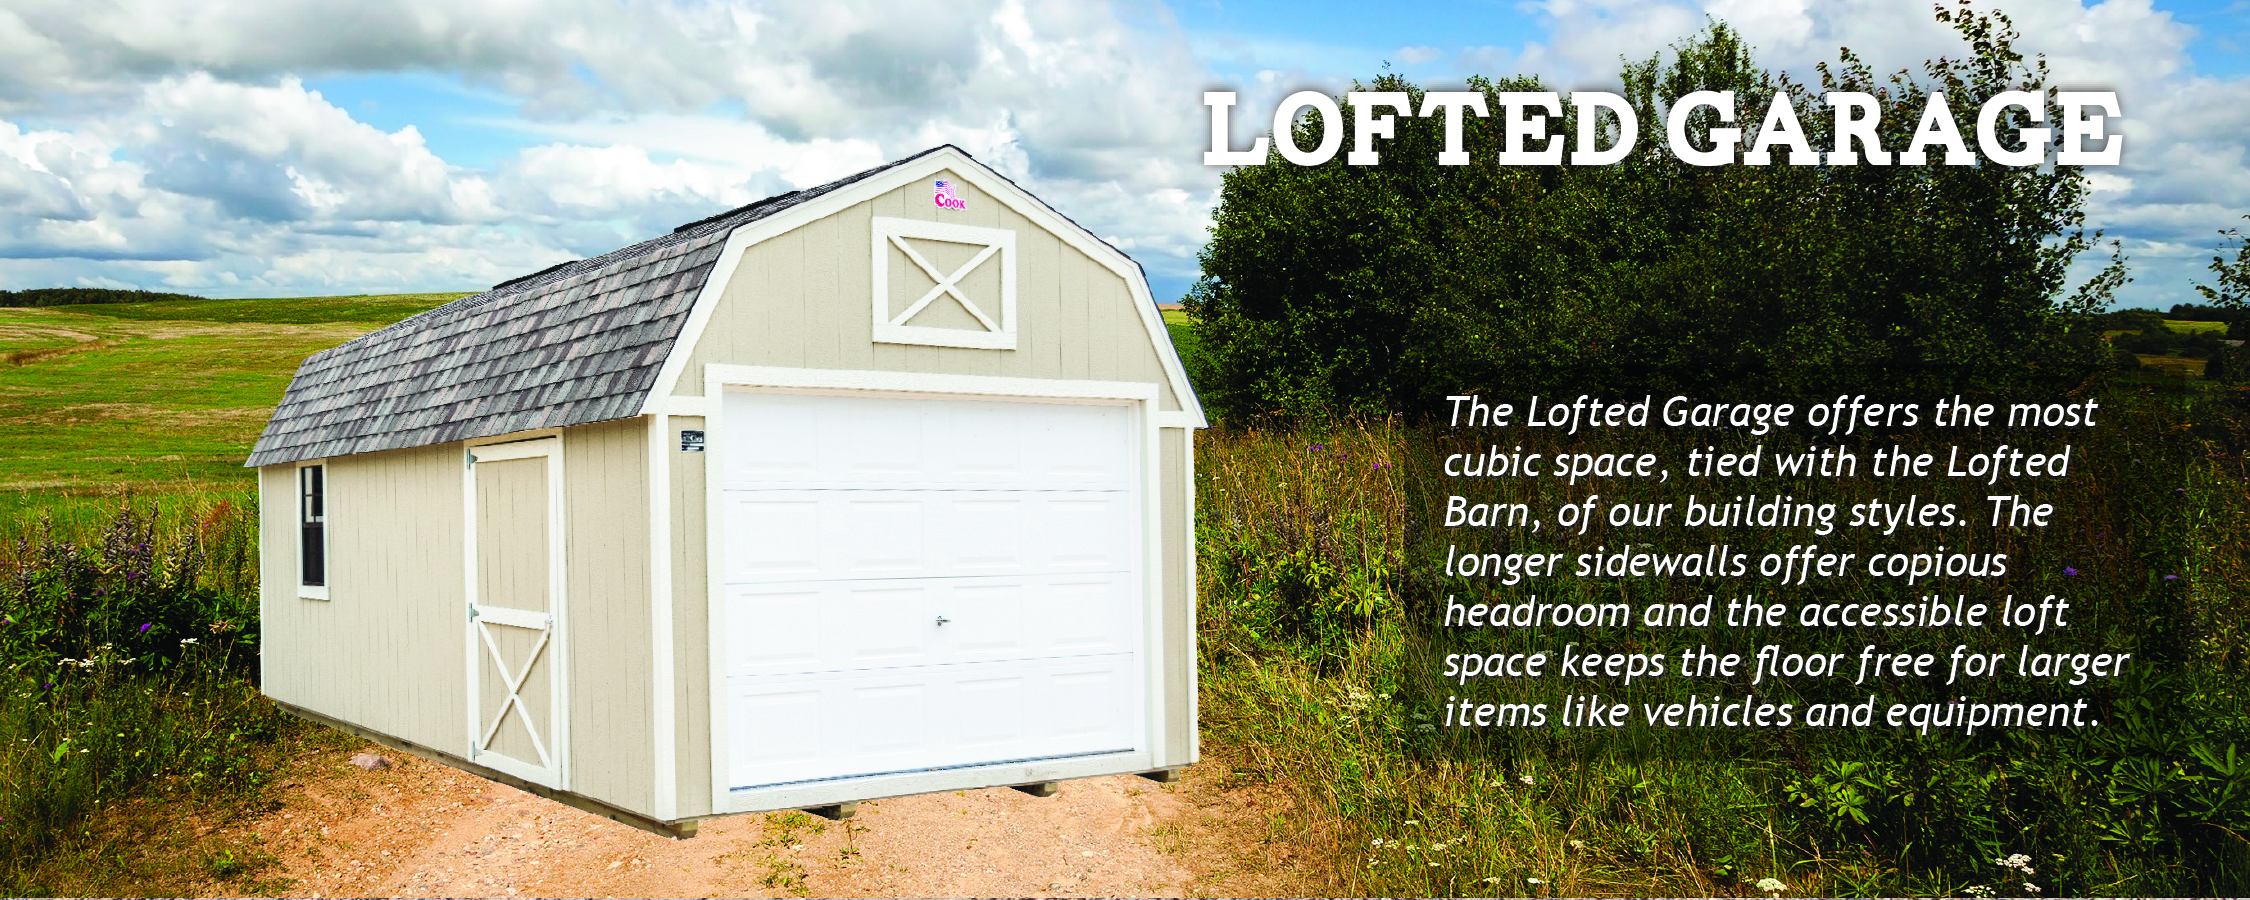 Lofted Garage for storing vehicles & extras